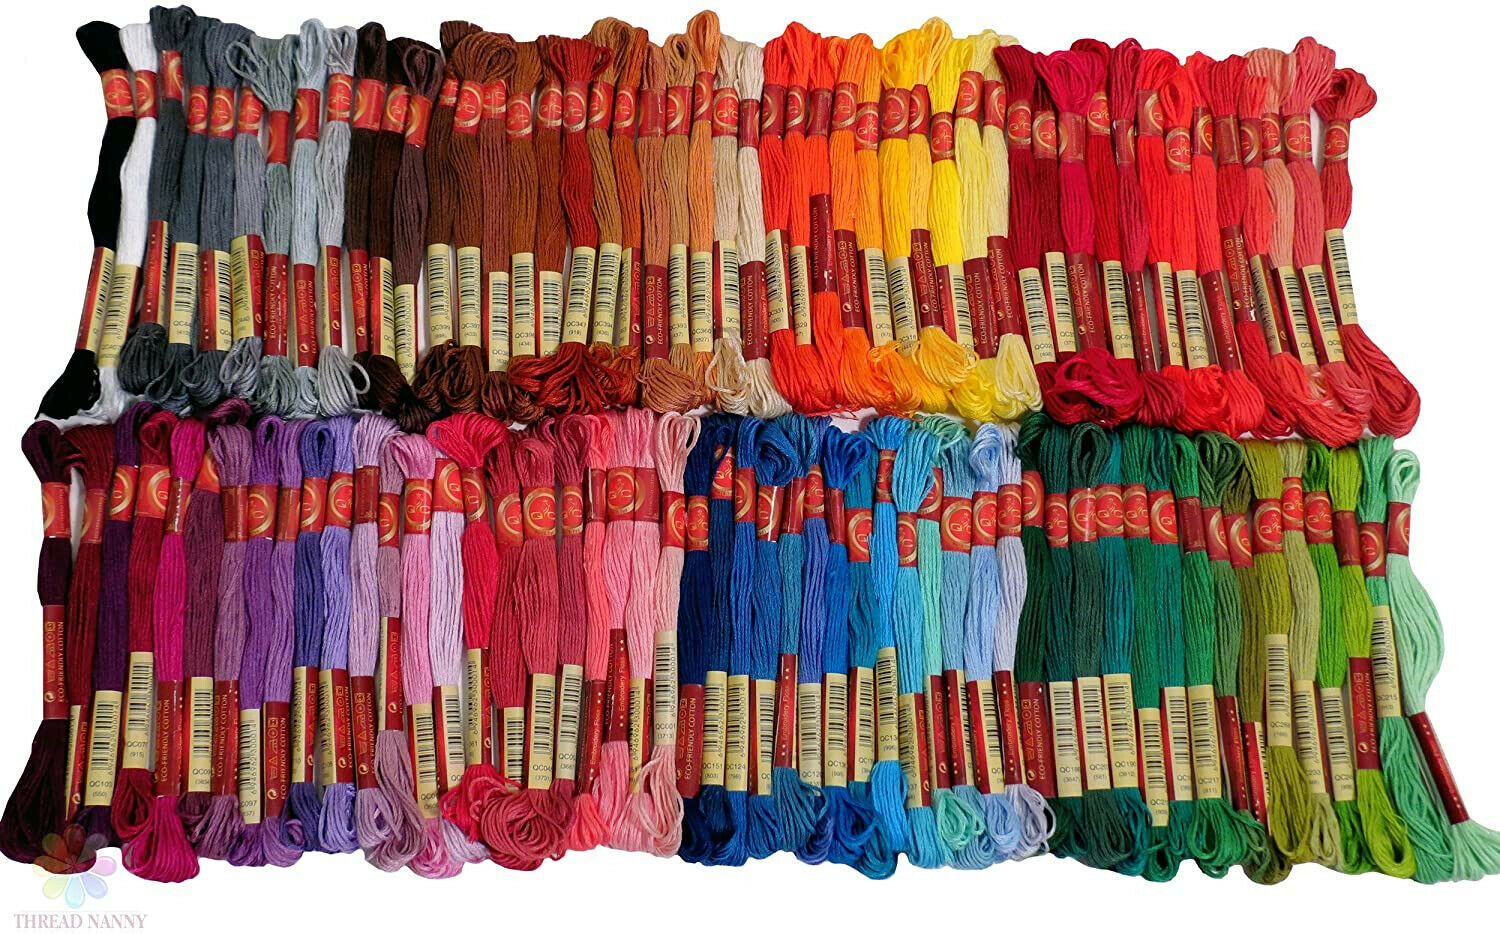 Embroidery Thread - Full 100 Colors Embroidery Floss Skeins